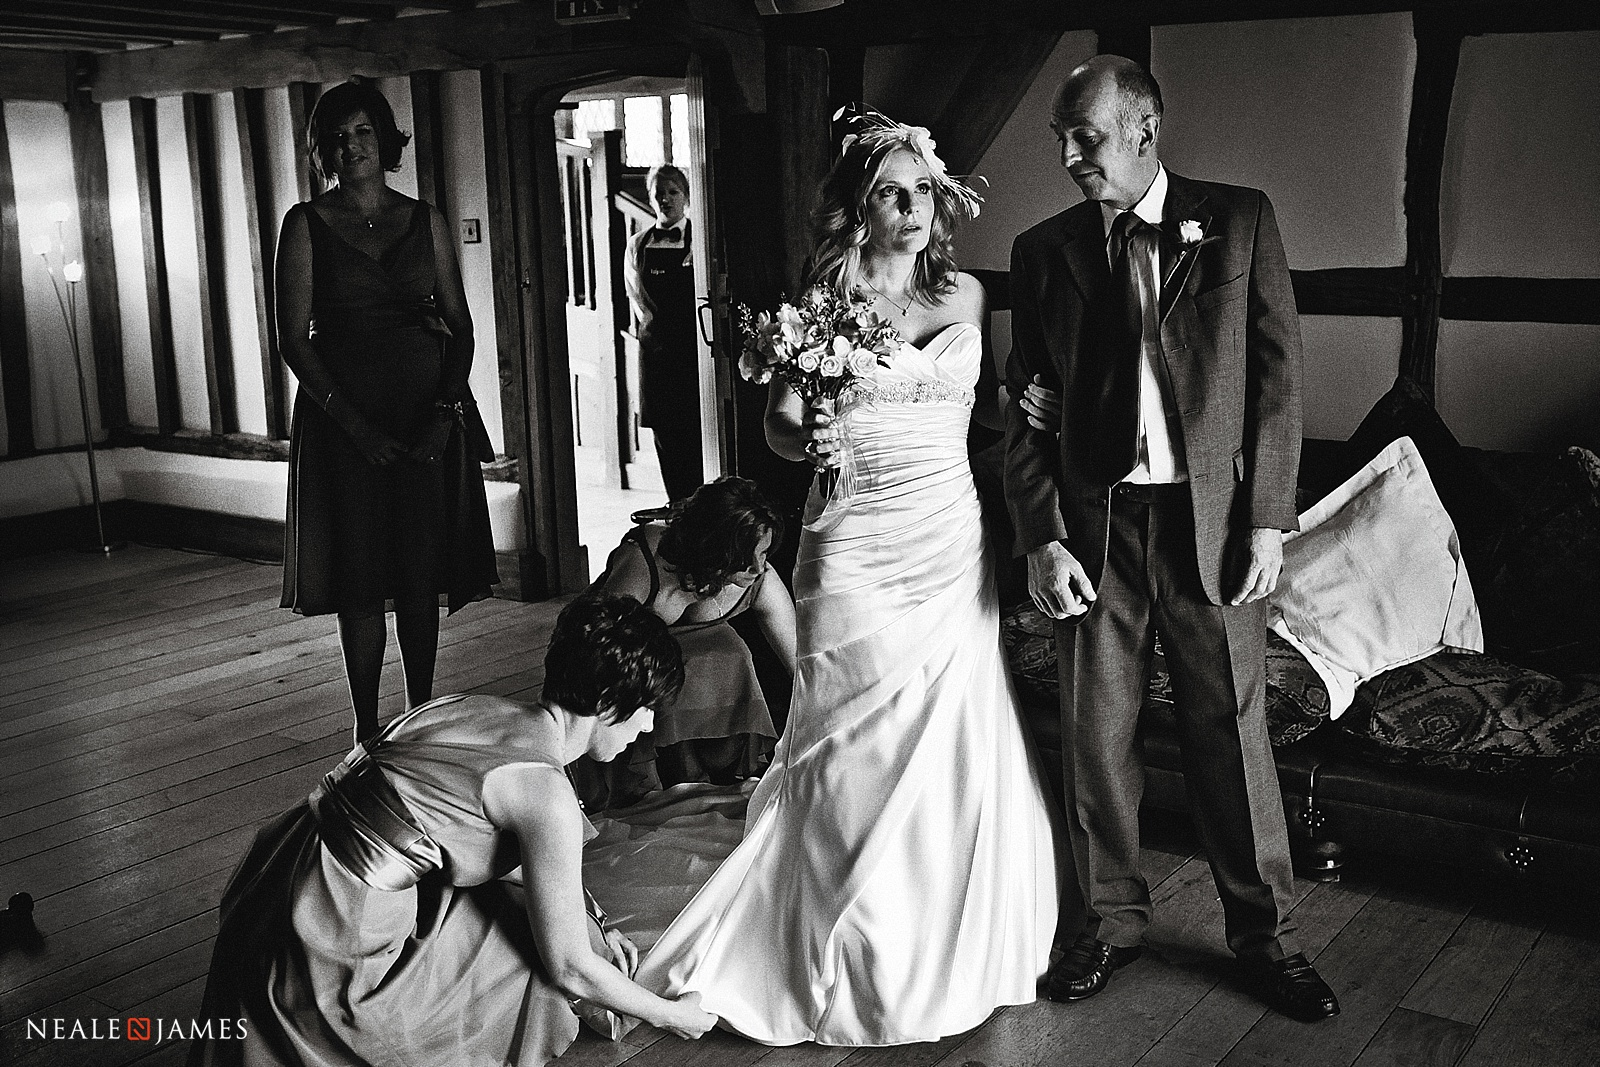 Black and white picture of a bride anticipating the start of her wedding